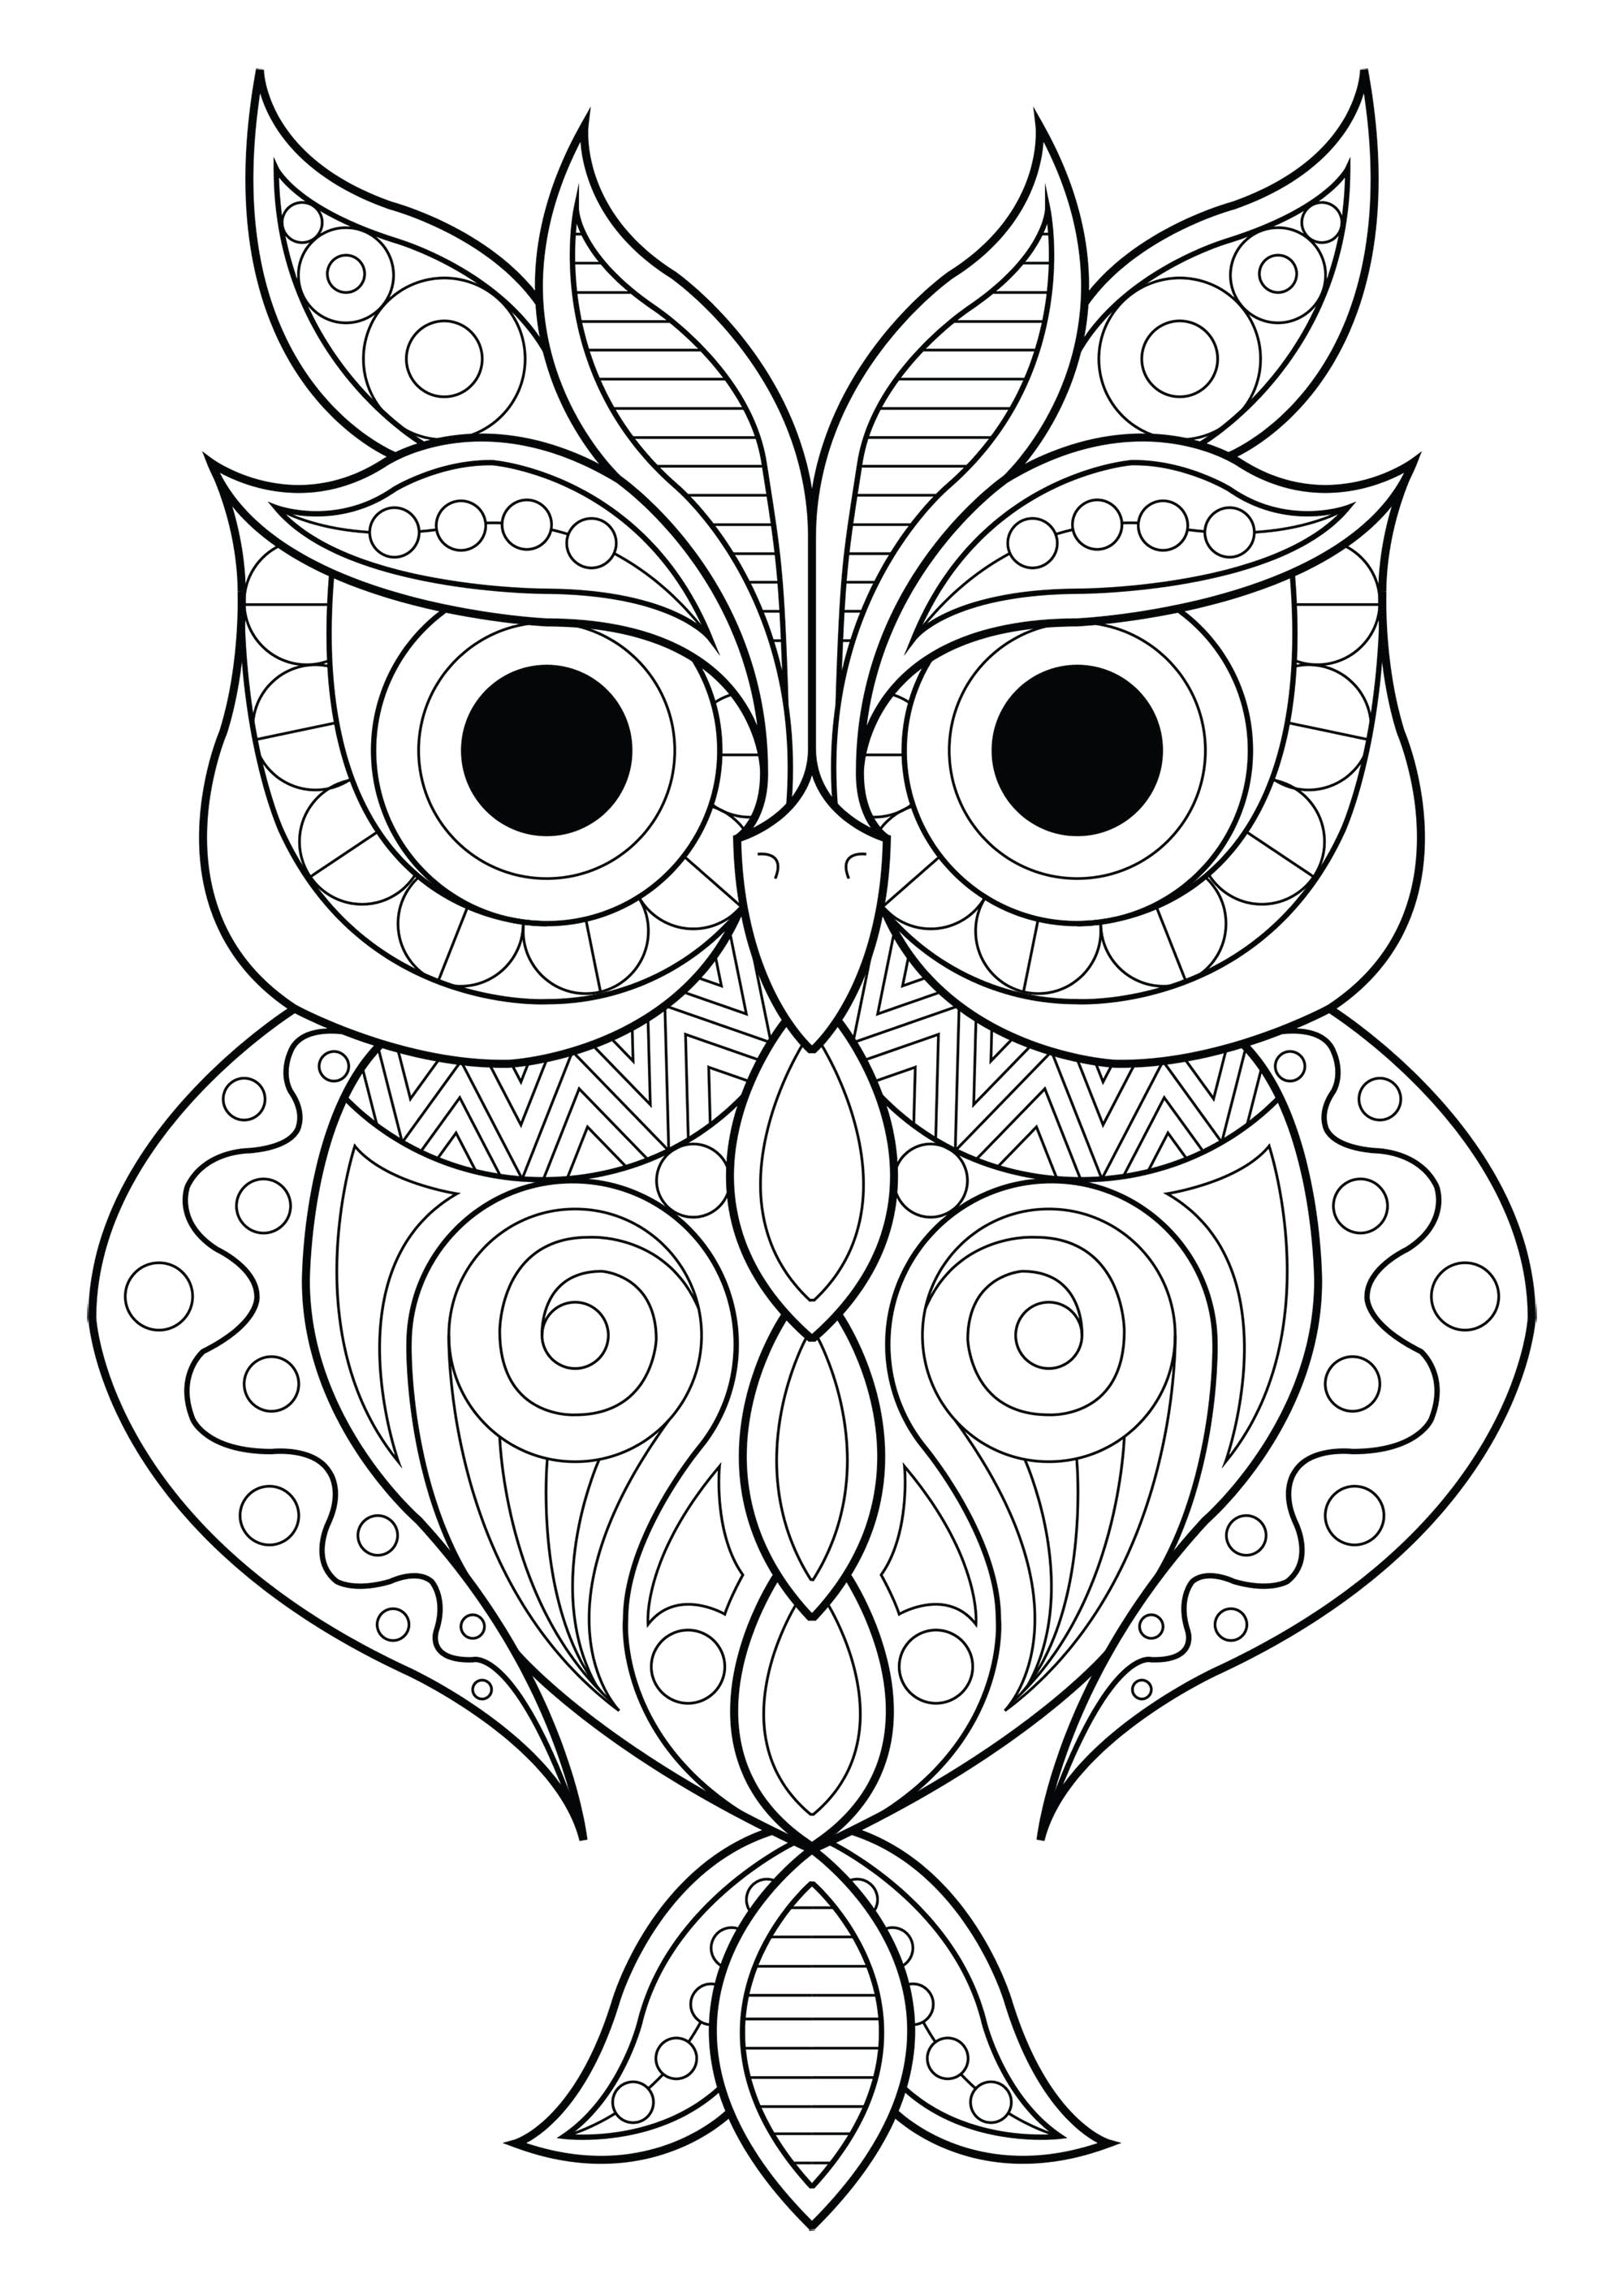 Owl Simple Patterns 2